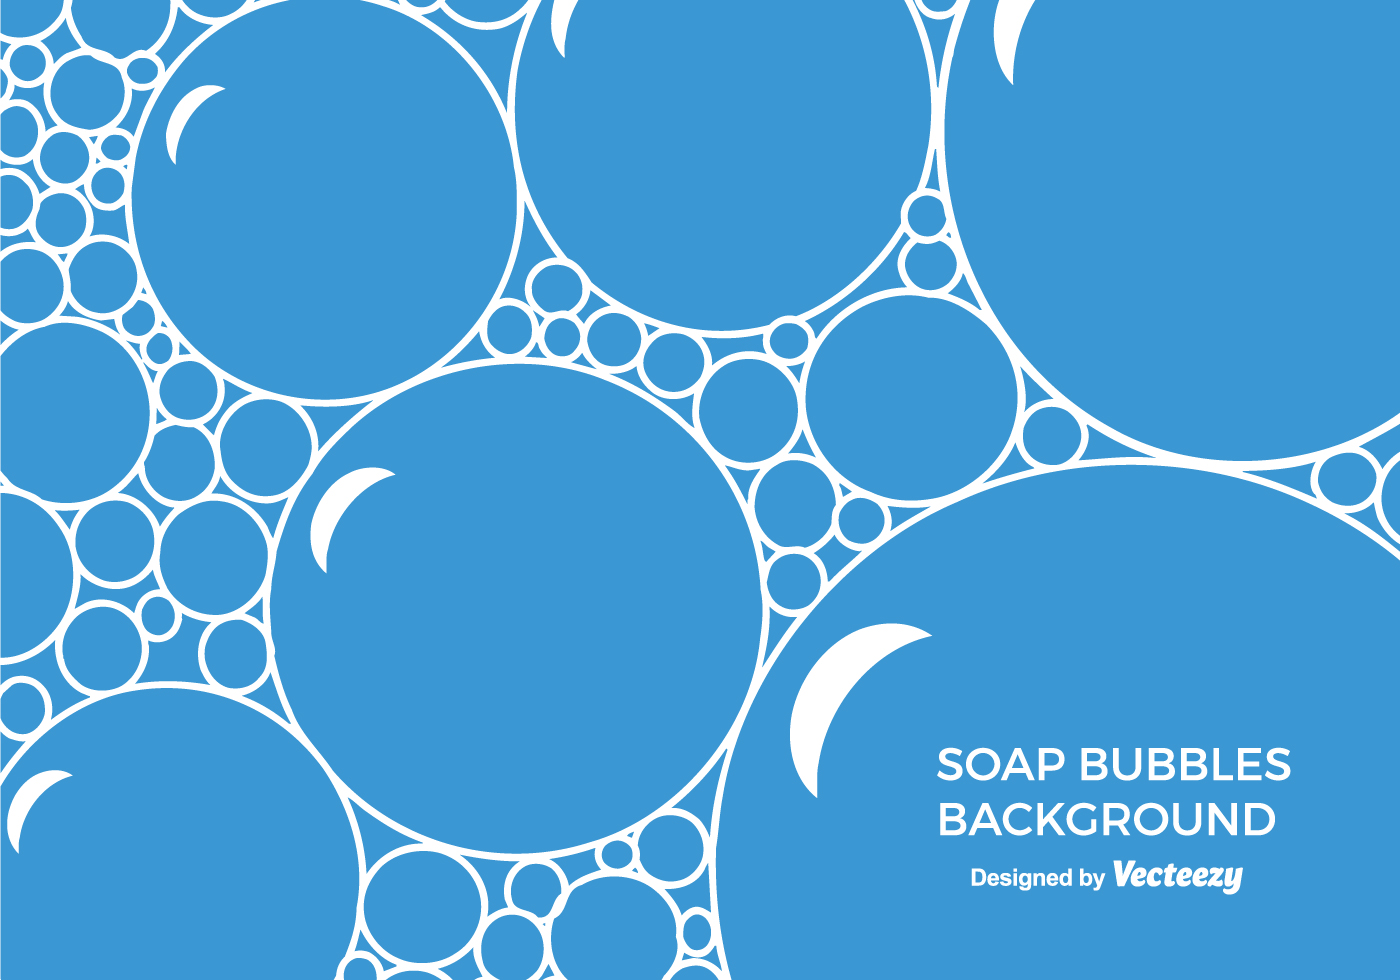 suds background download - photo #4